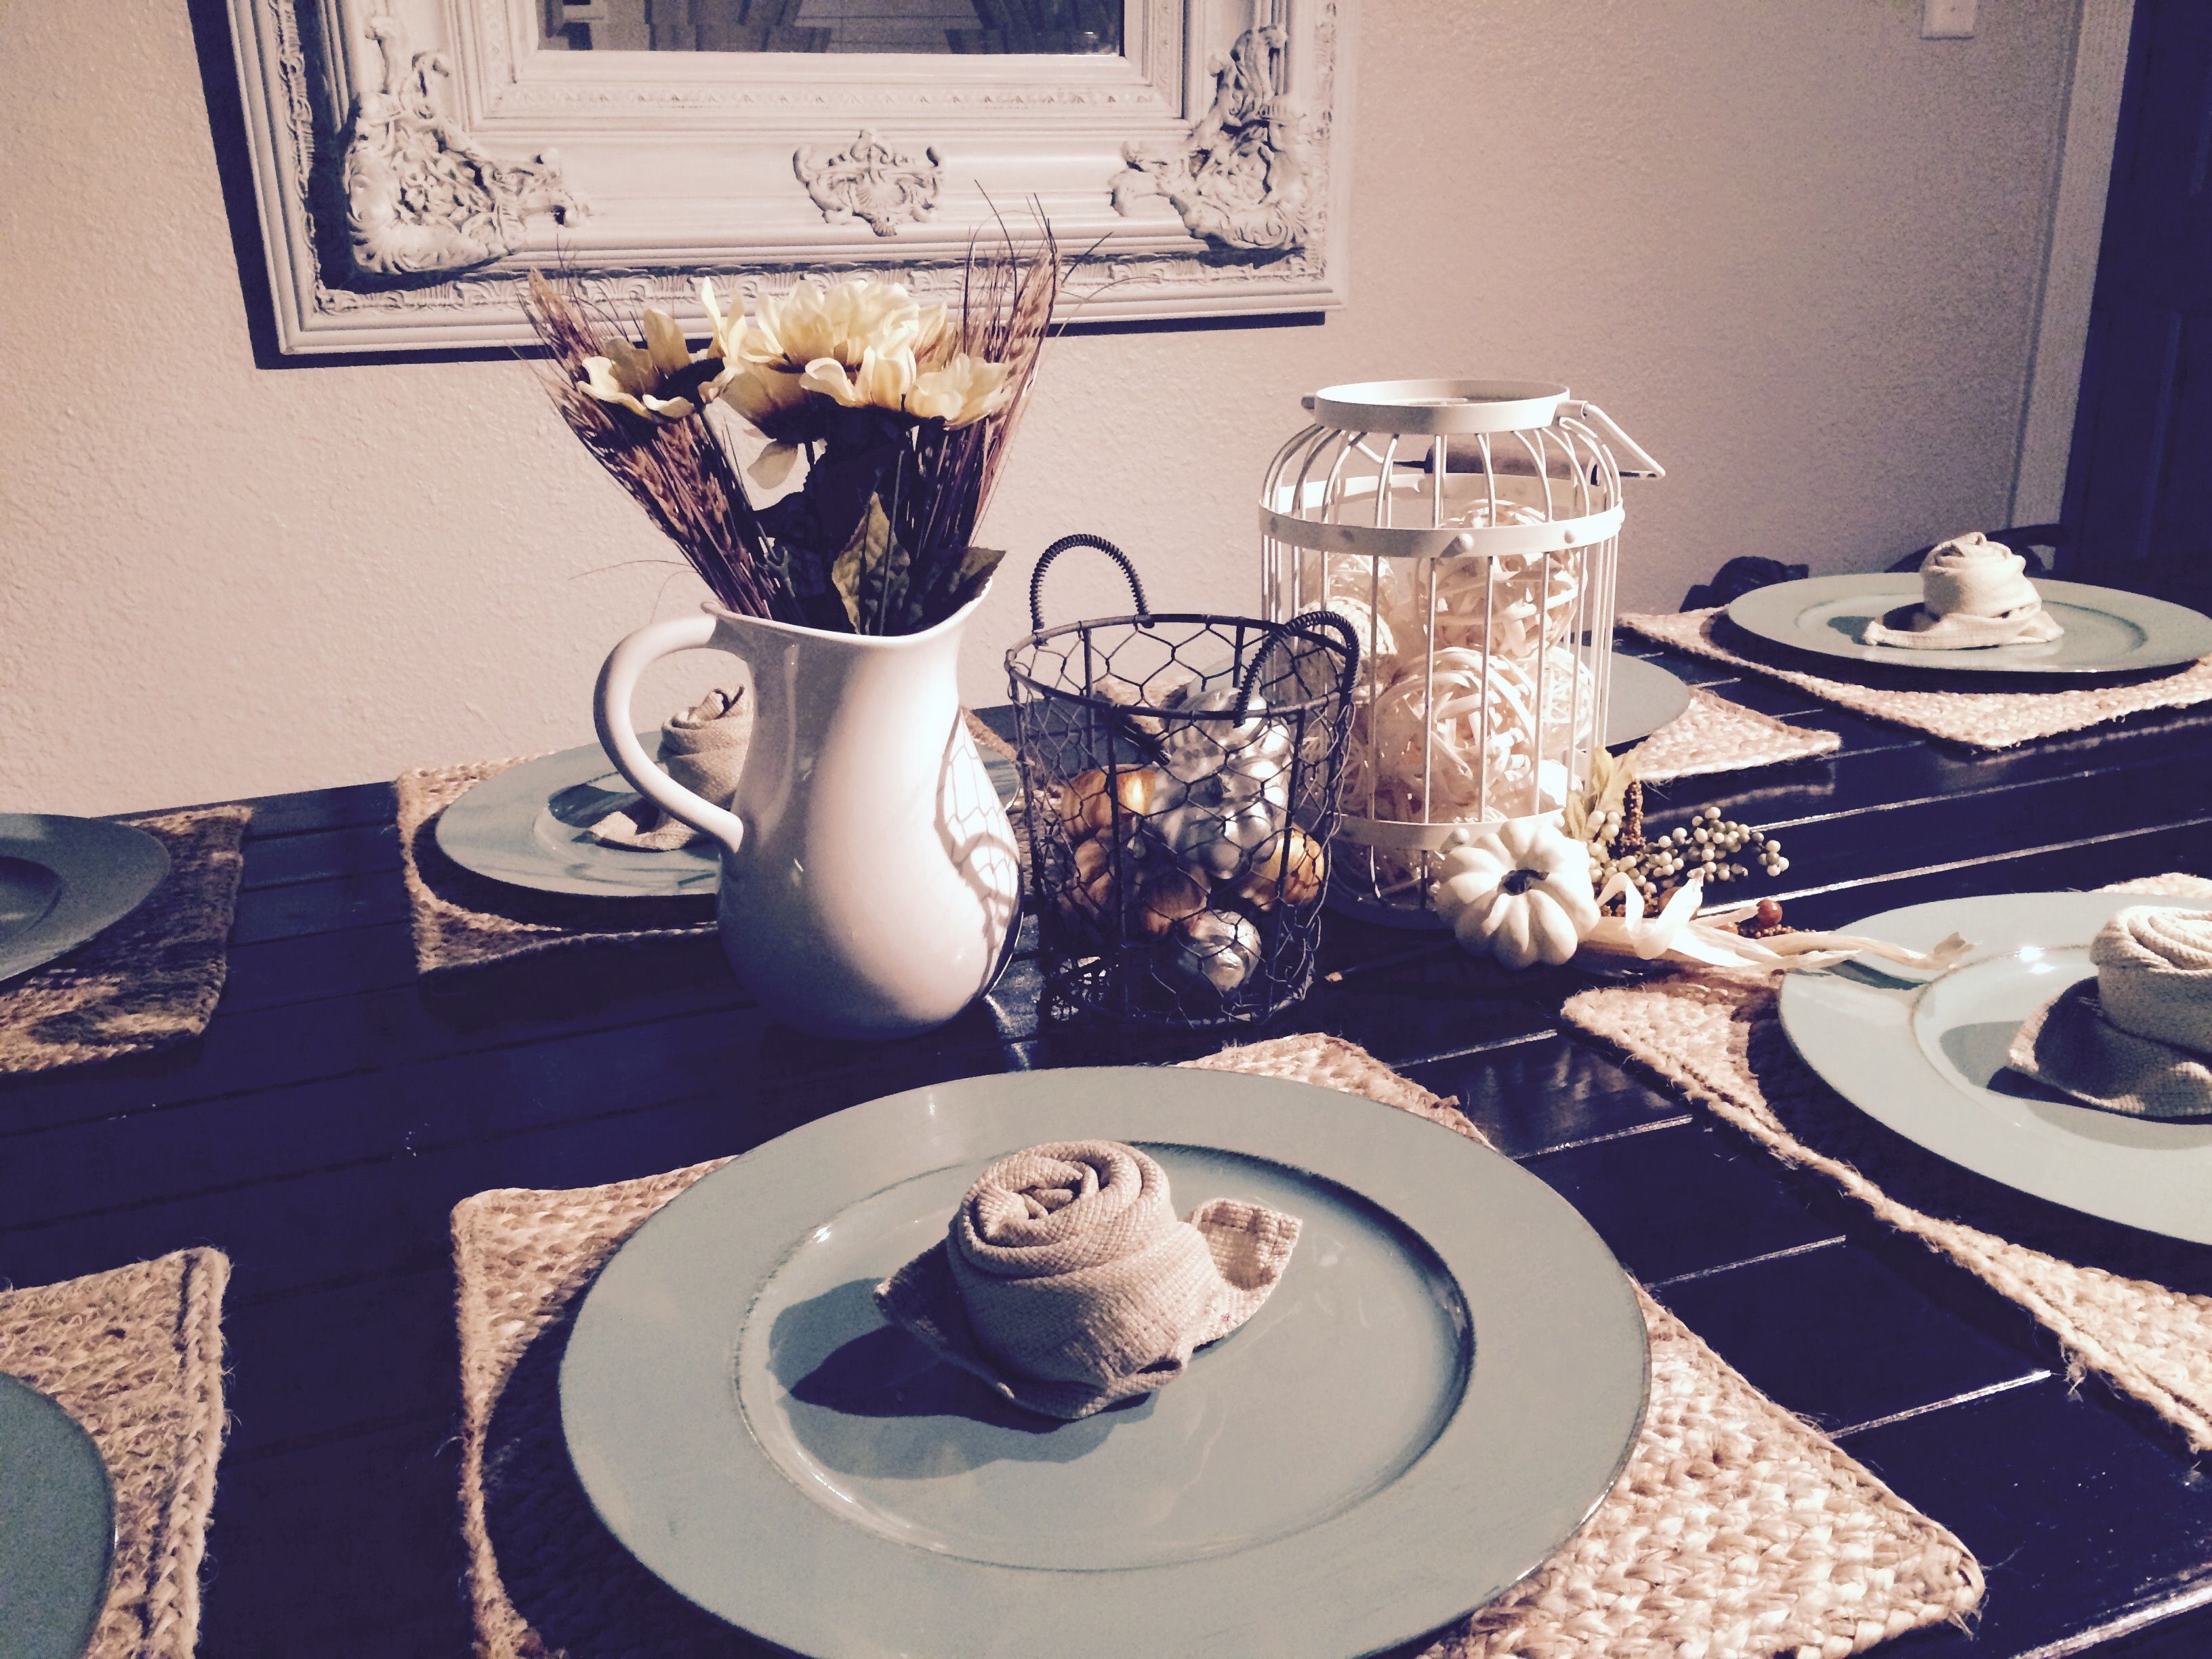 Pin by Faith Priour on A House That Love Built Table